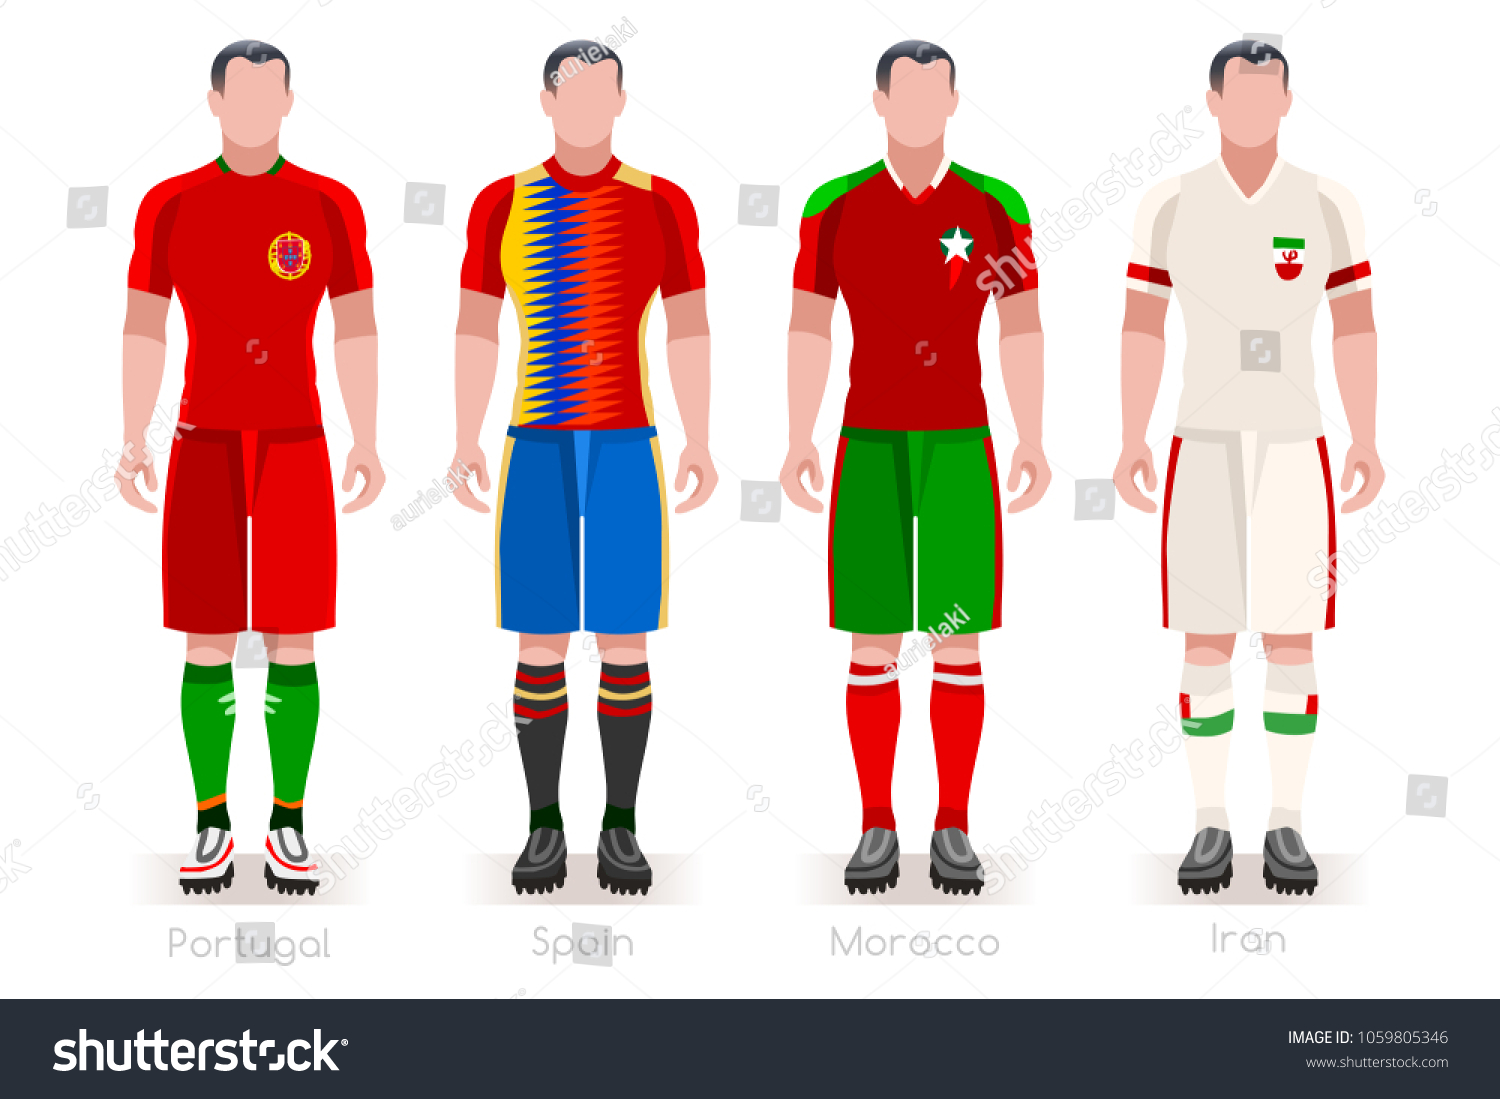 Russia 2018 soccer world cup group B players with team shirts flags.  Referee football illustration 1a47cd8a4